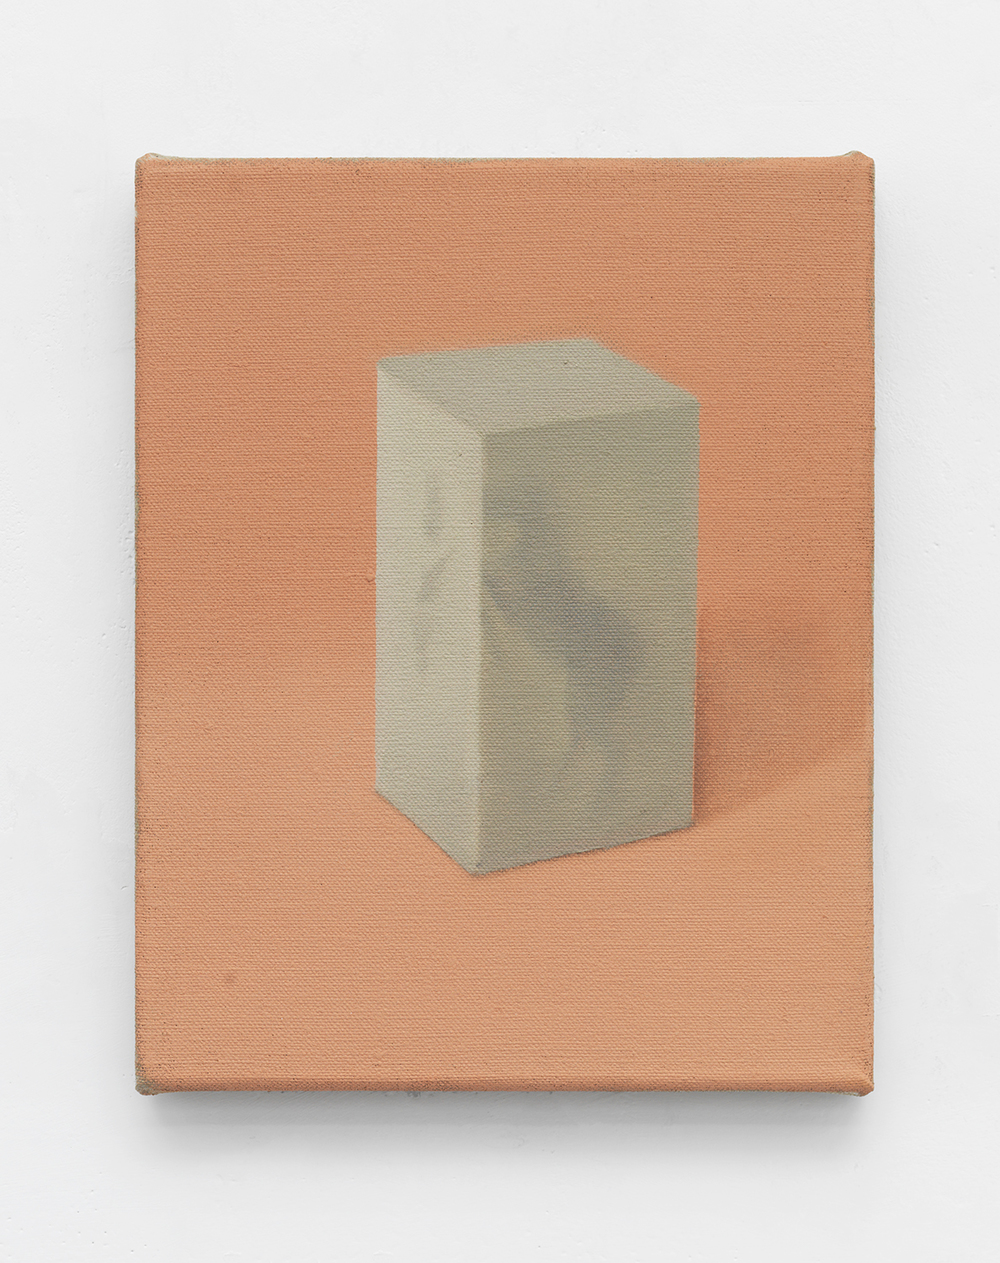 Rubber Horse, 2015 Oil on linen 10 x 8 inches